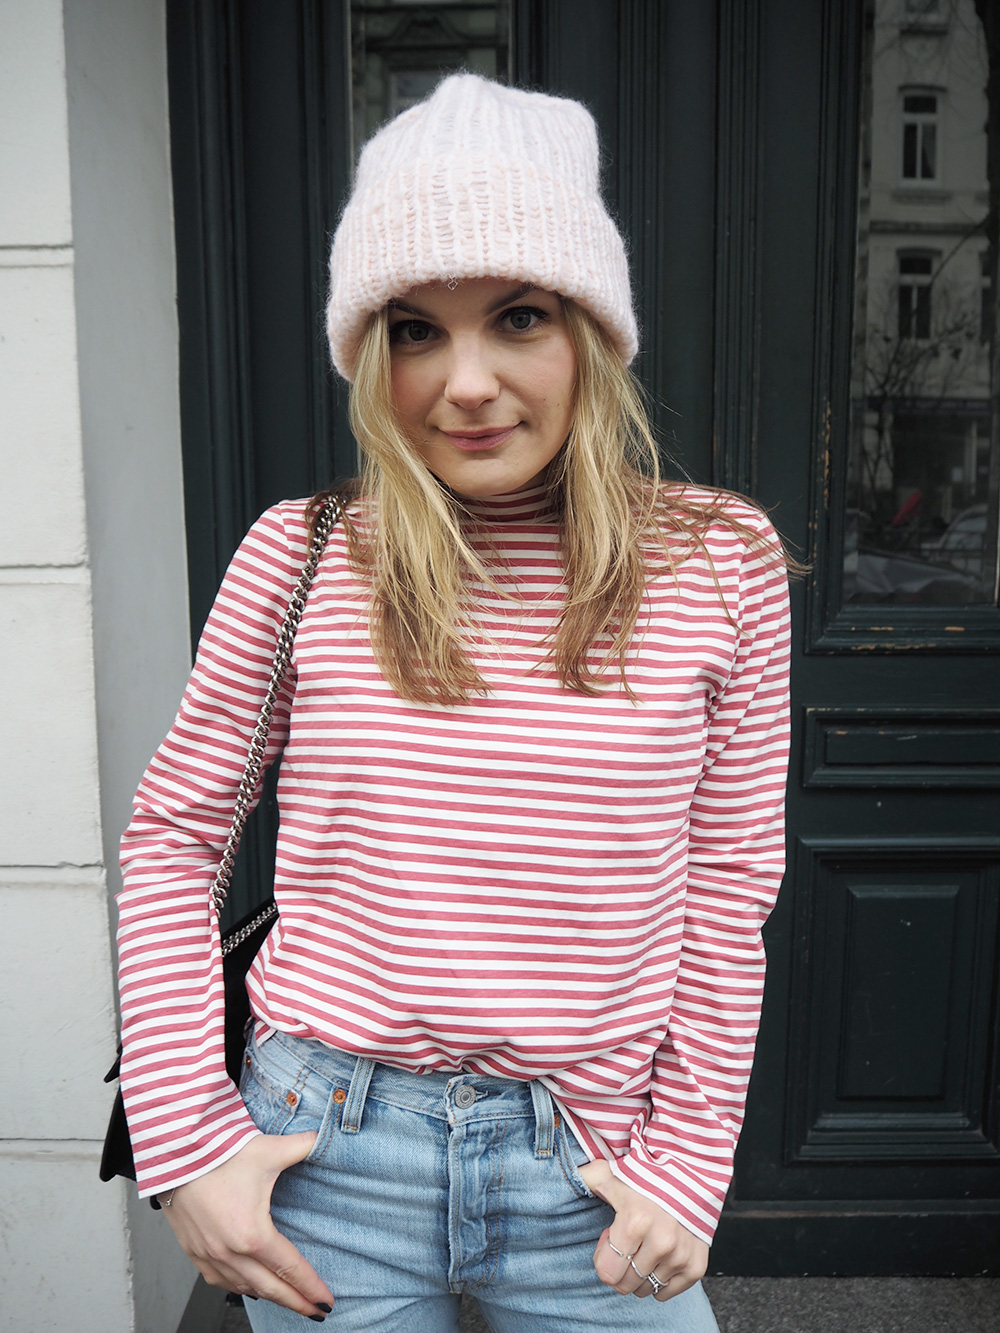 Rosycheeks-blog-levis-skinny-501-mih-jeans-pink-hat